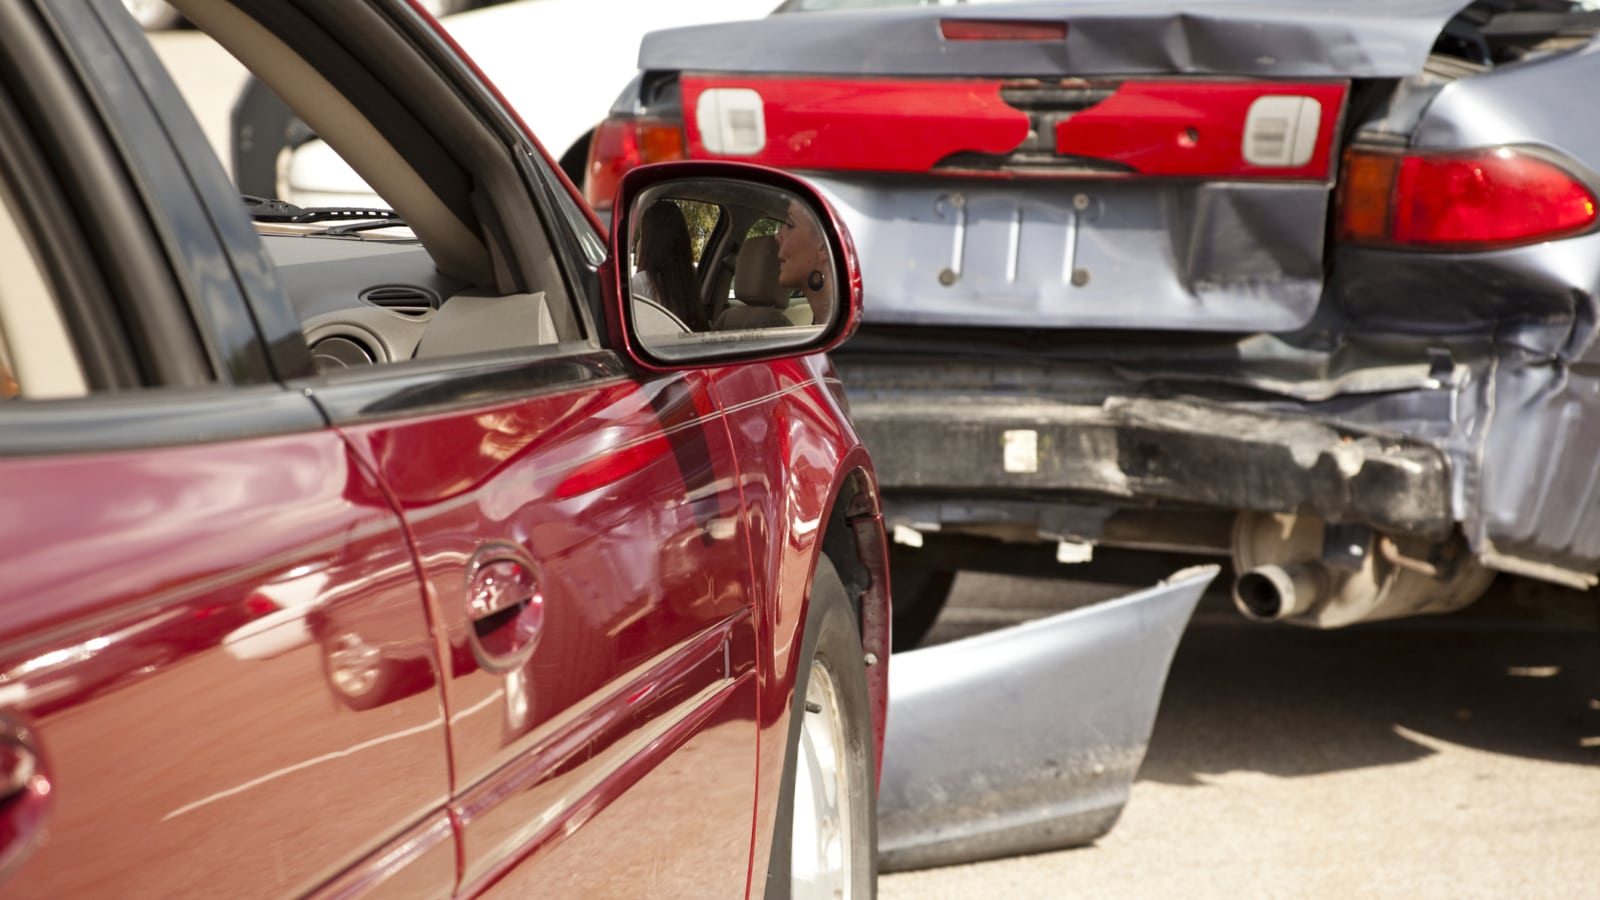 Rear End Accident Stock Photo